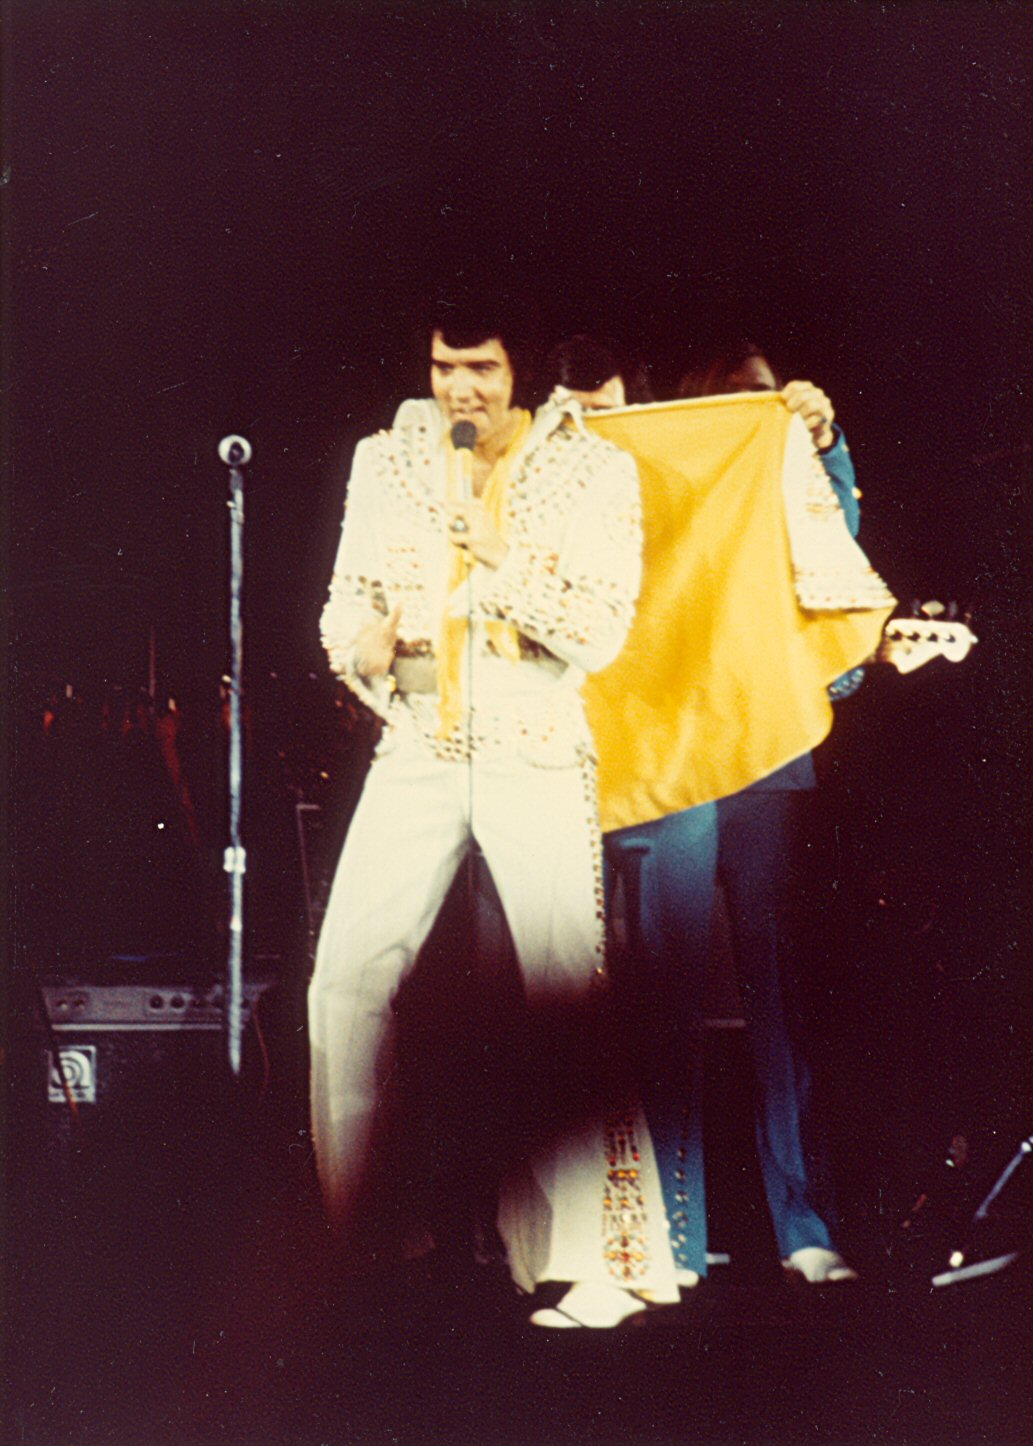 https://i2.wp.com/www.elvisconcerts.com/pictures/s73062203.jpg